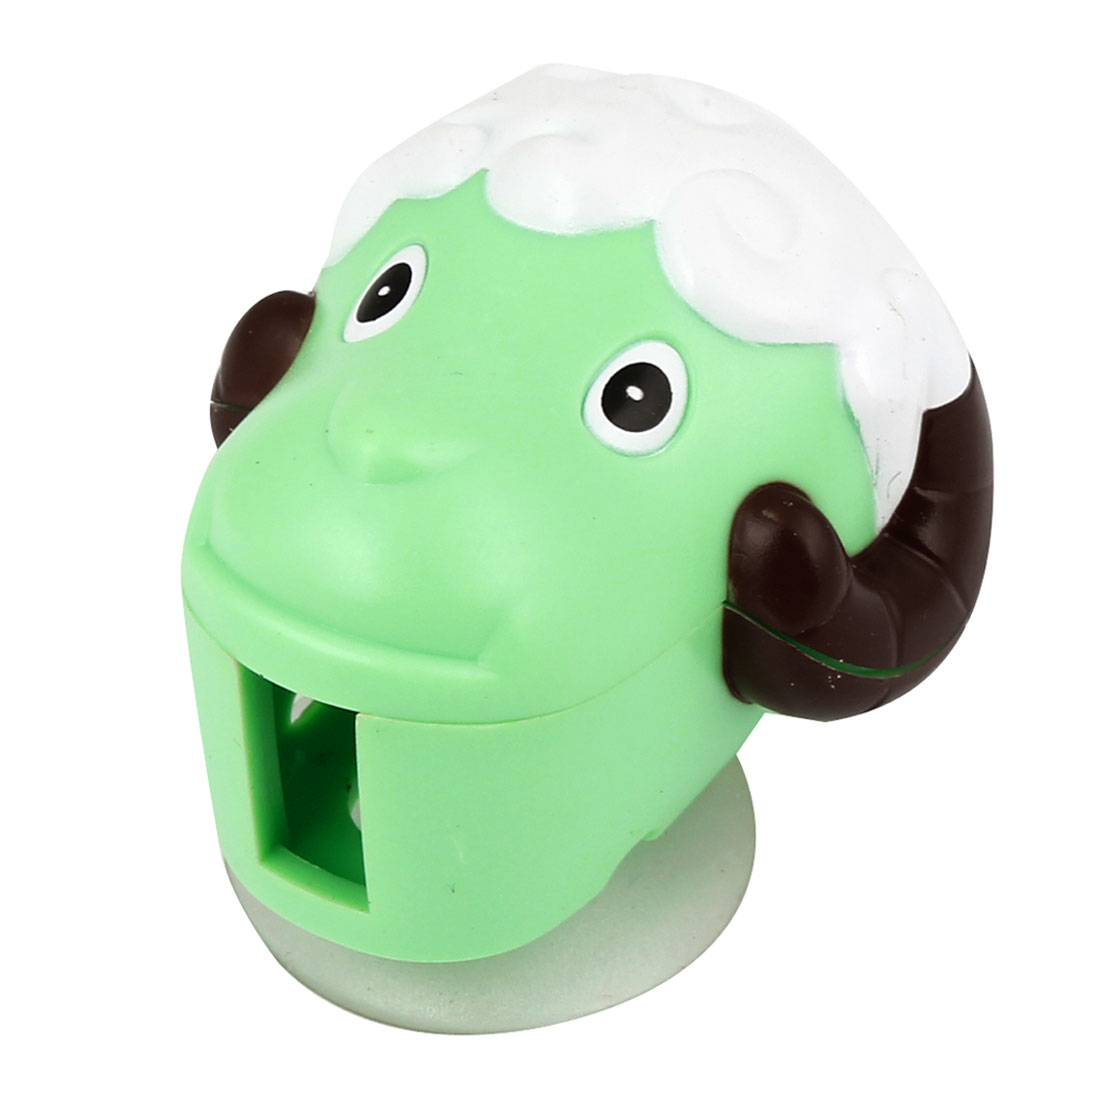 Portable Green Plastic Sheep Design Bathroom Suction up Toothbrush Rack Holder